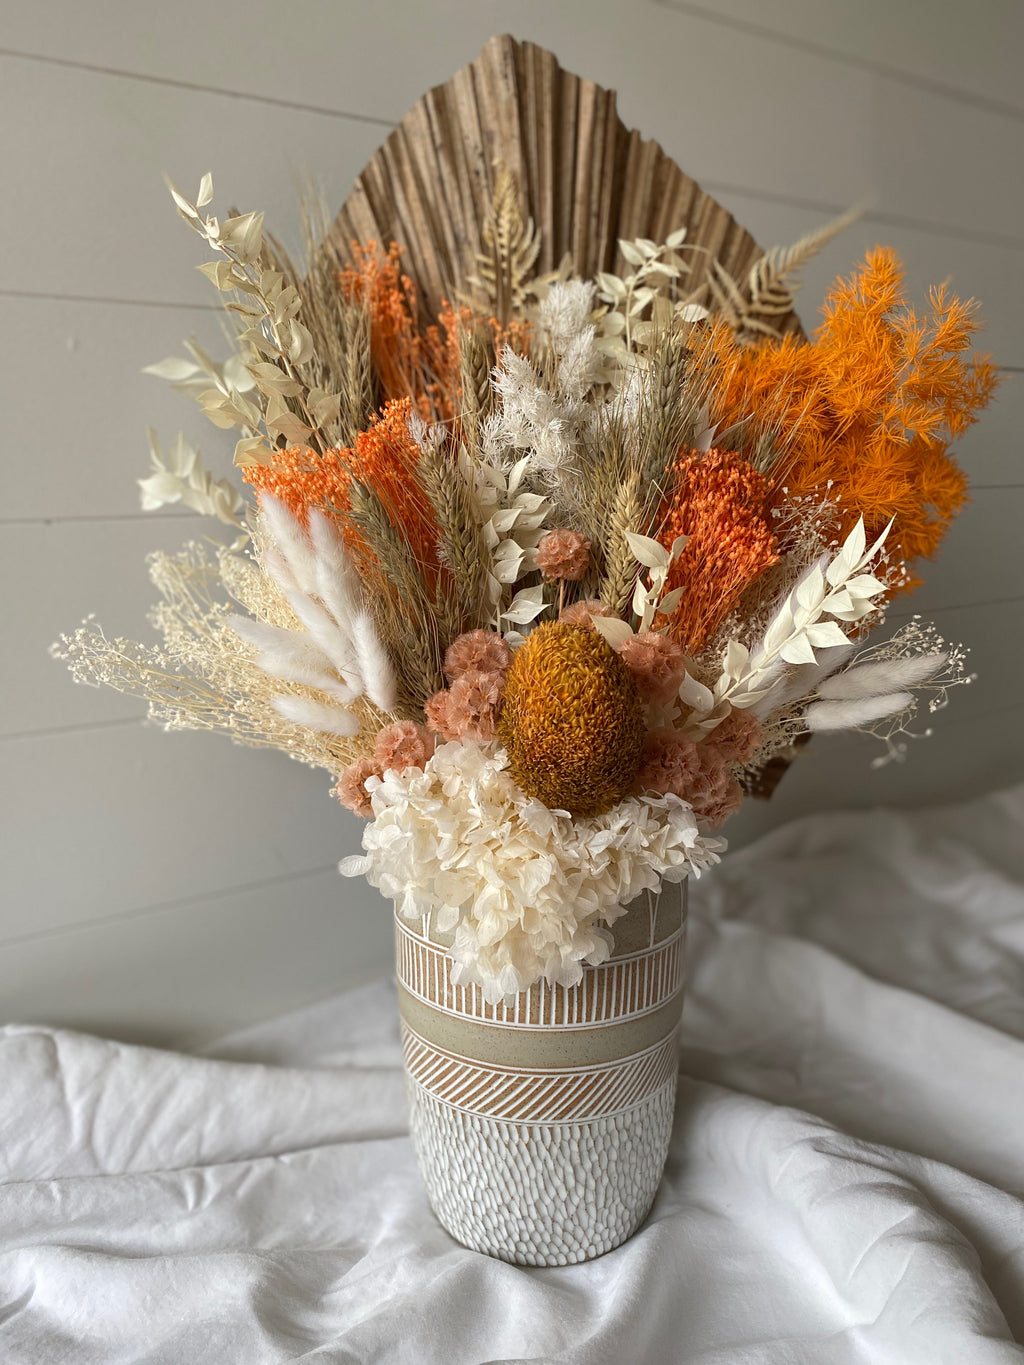 Large Floral Arrangement - Boho Rain Raw Vase